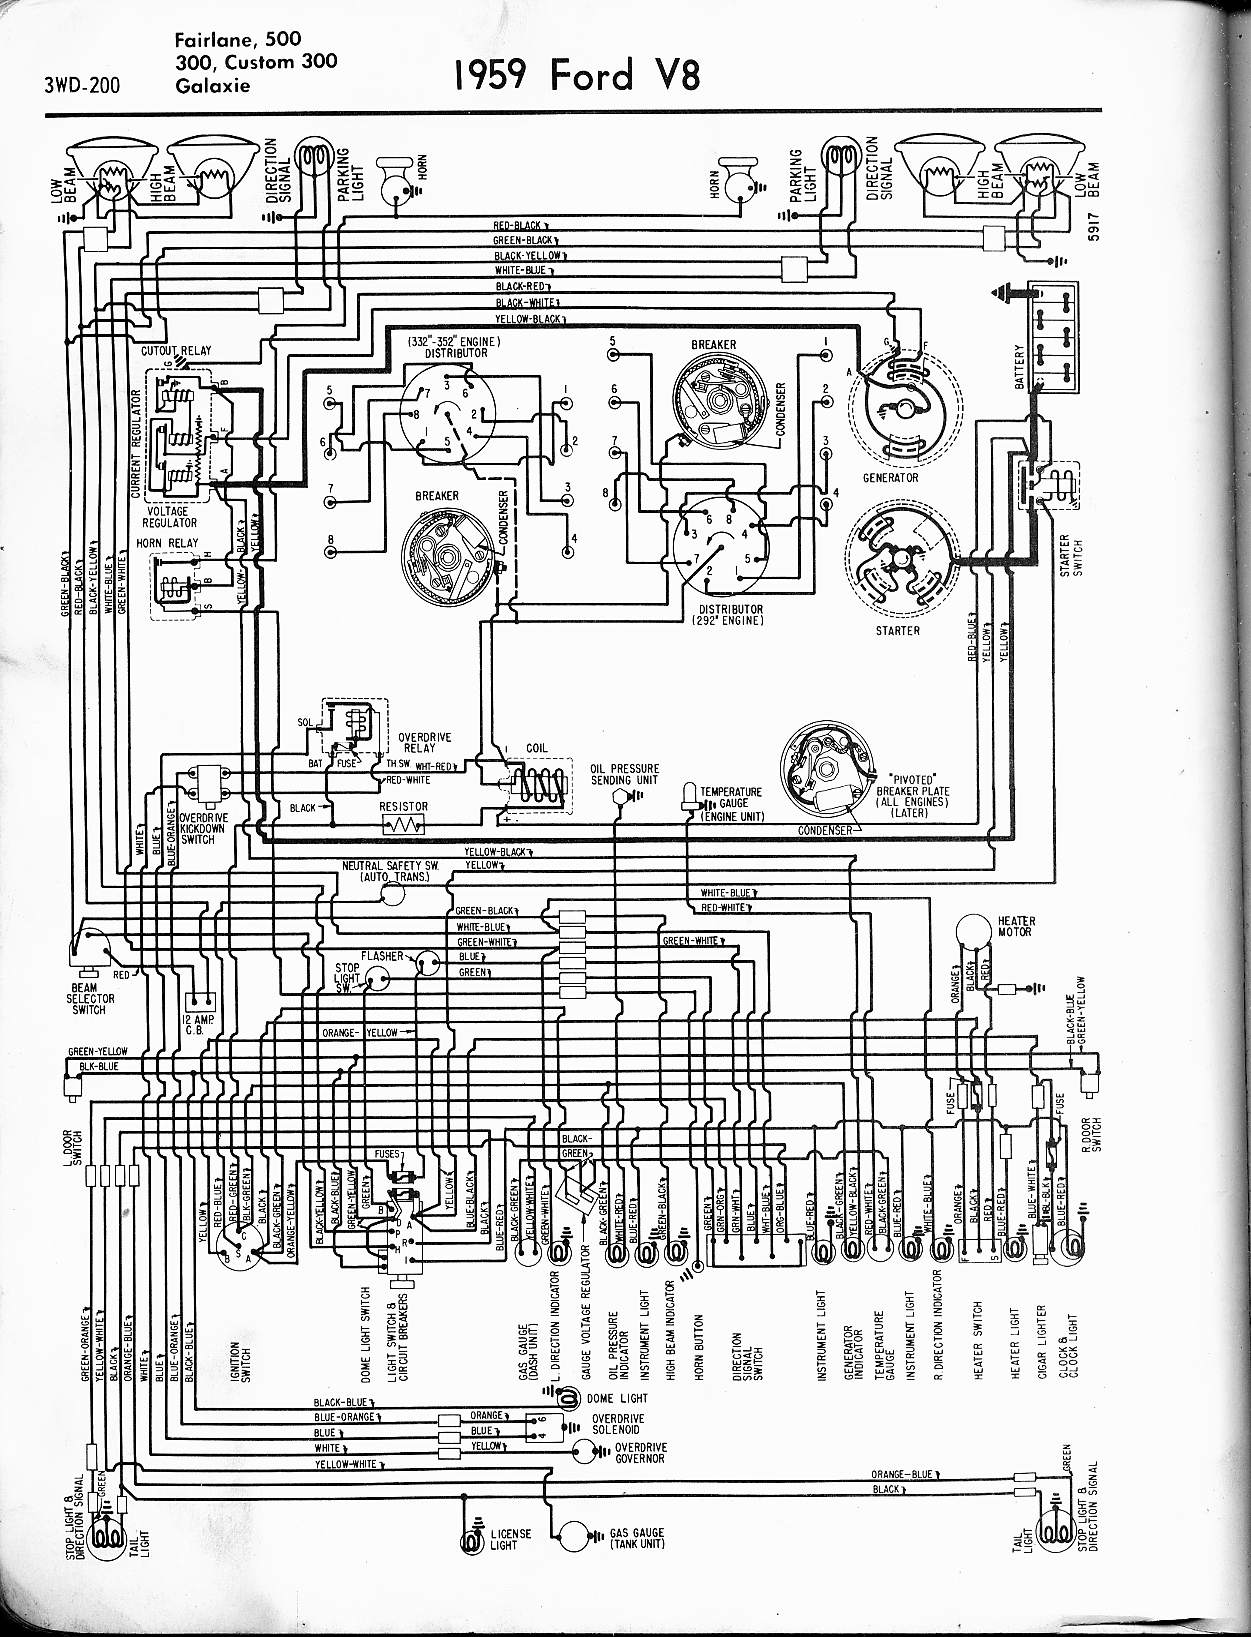 ford wiring harness 1957 ford f 100 1964 ford truck f100 s wiring diagram automotive | wiring ... ford wiring harness numbers #14